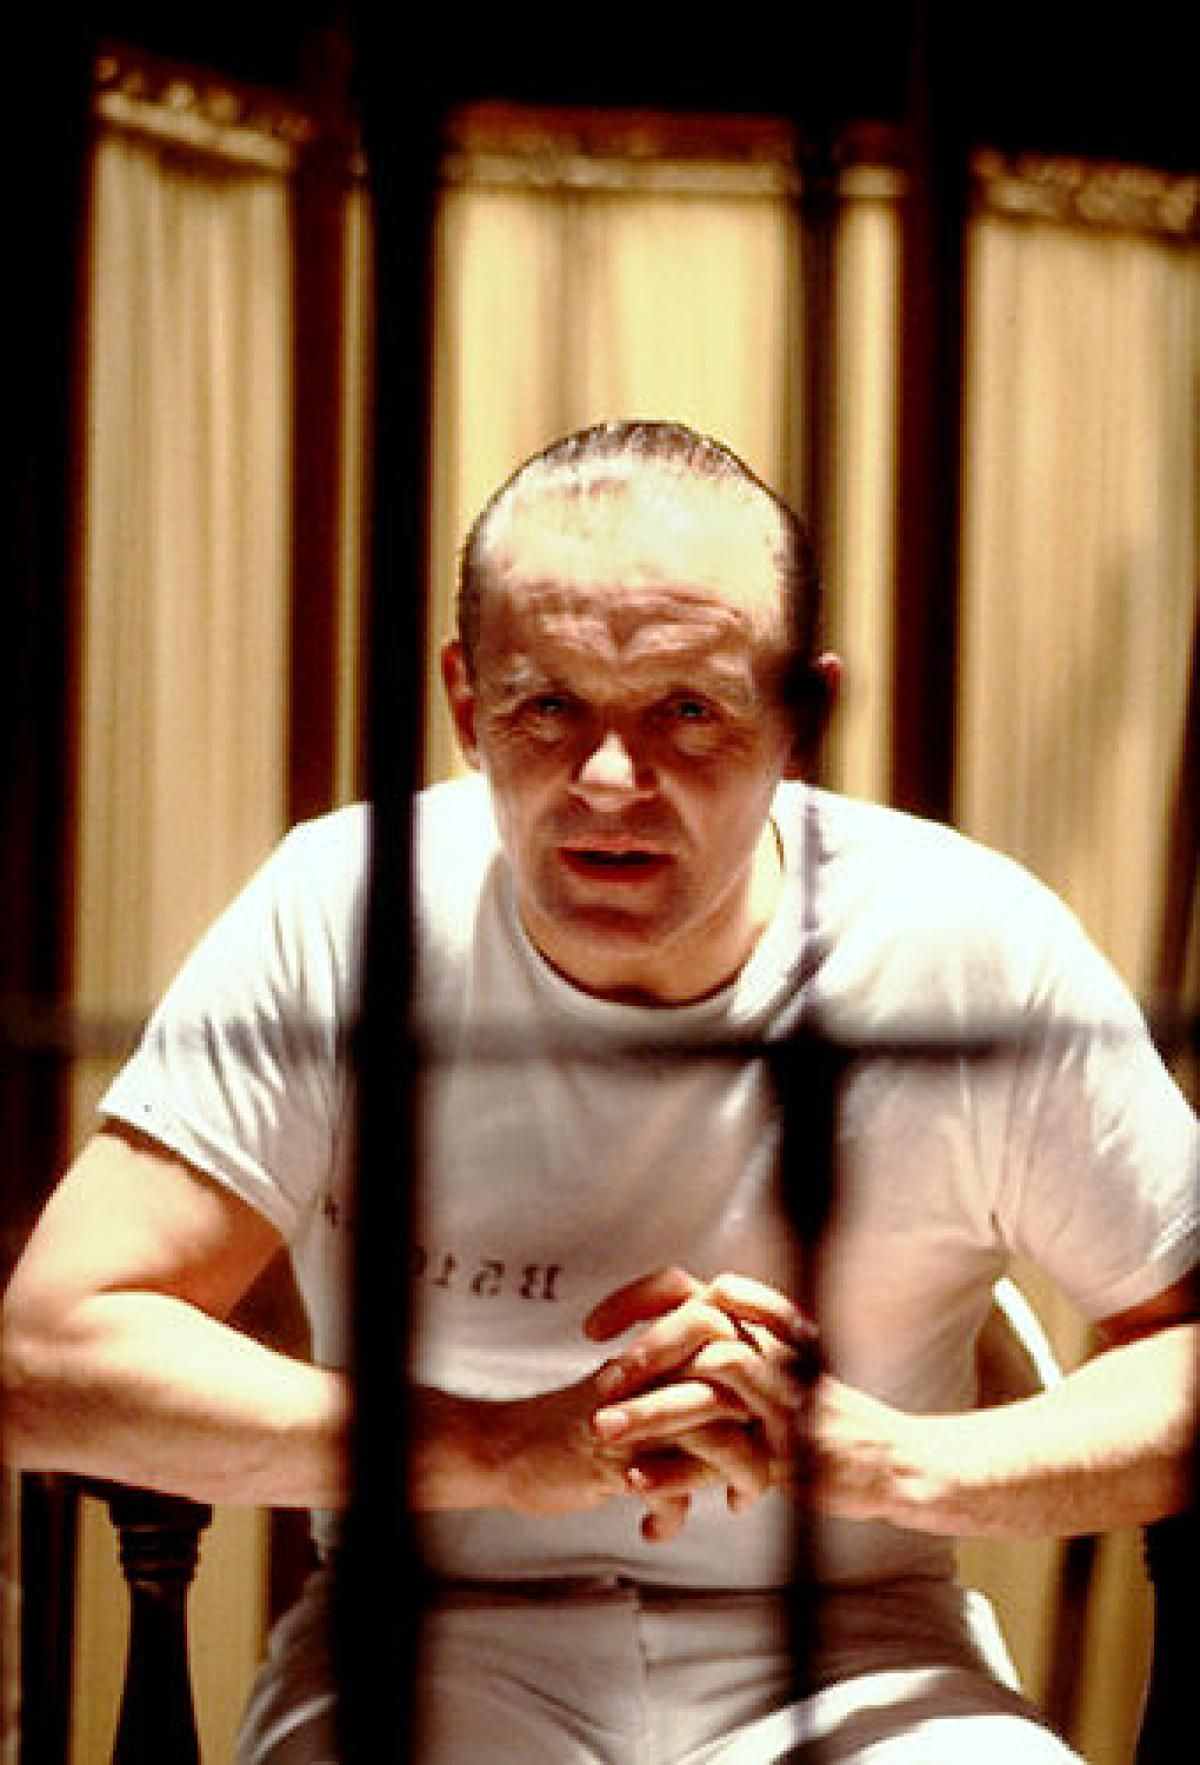 Anthony Hopkins as Hannibal Lecter in The Silence Of The